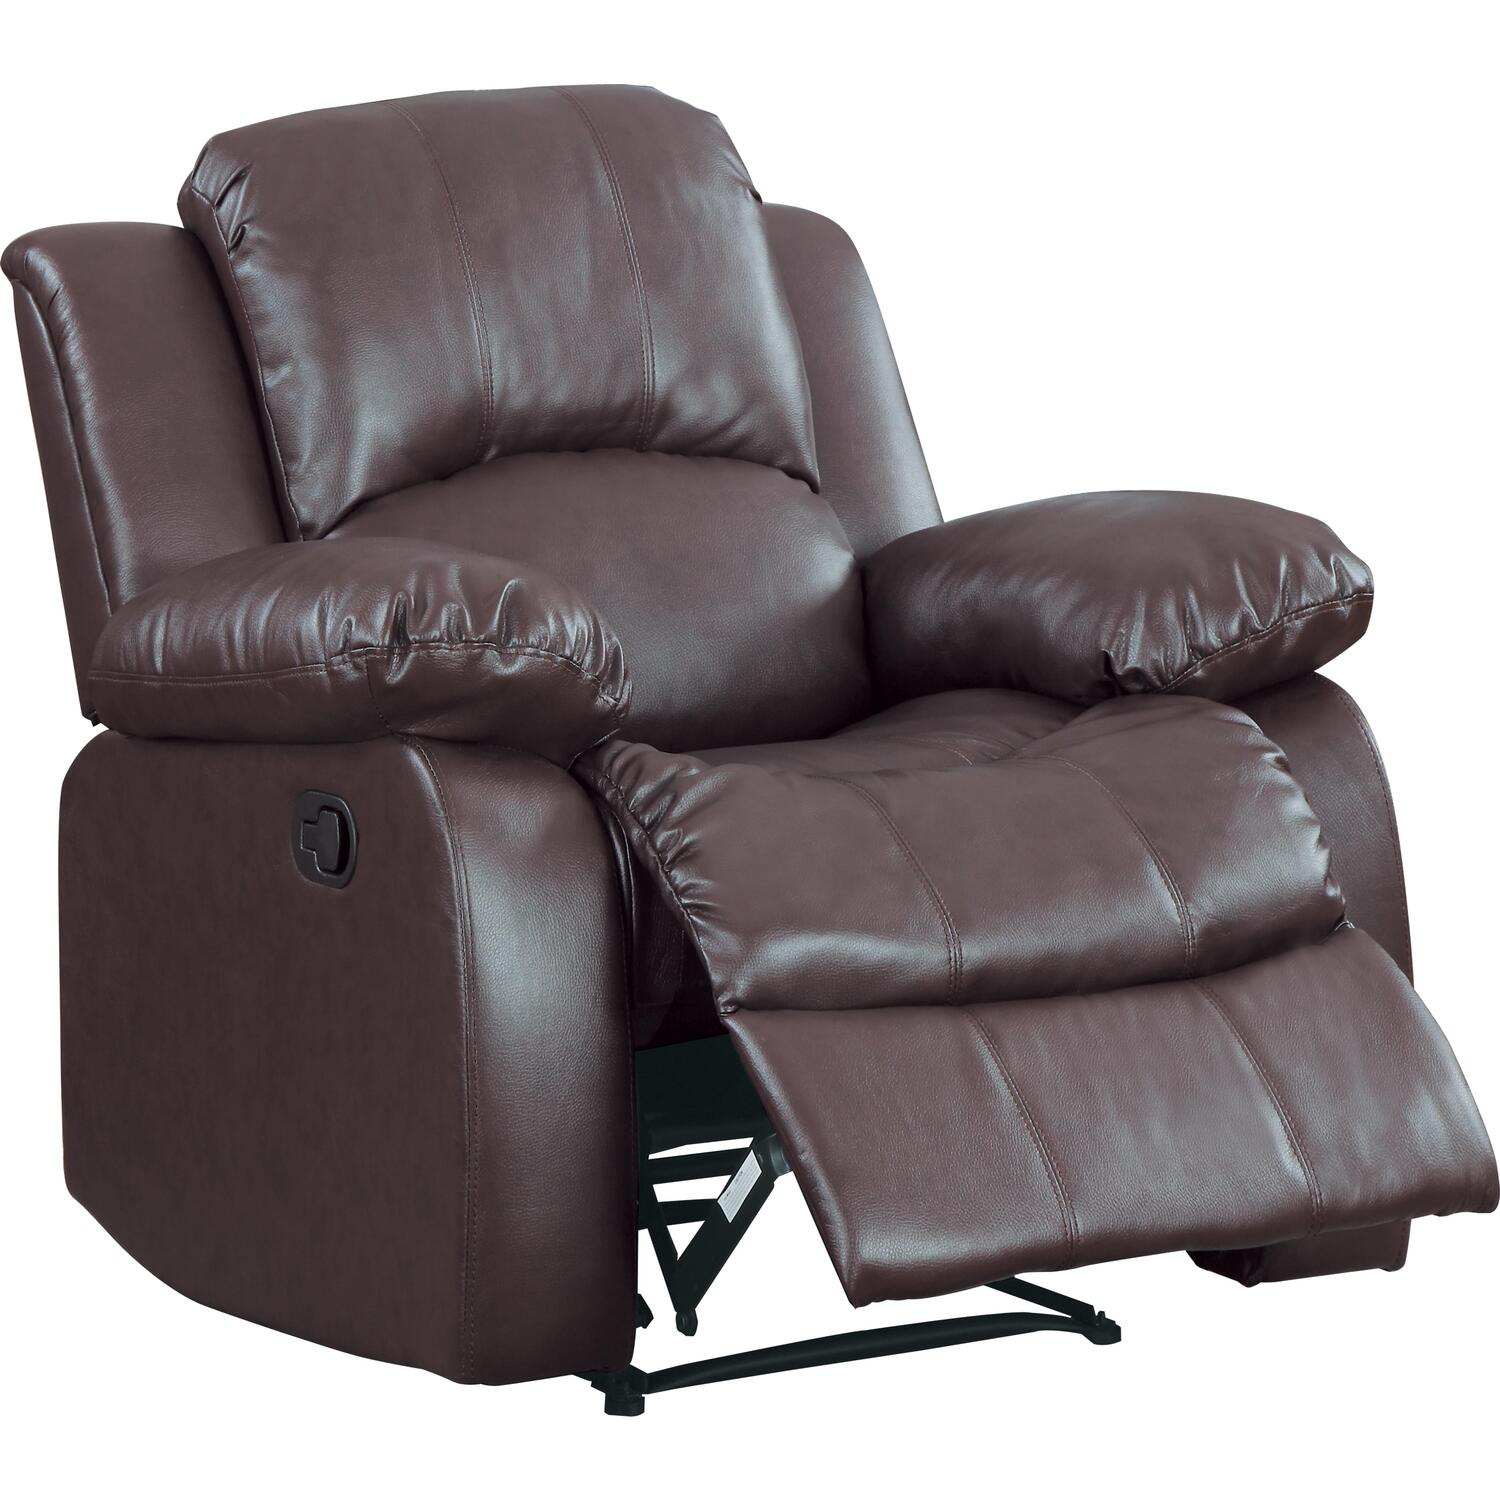 chairs padded chair kitchen recliner rocking dp leather choice products deluxe best cheap com amazon home pu